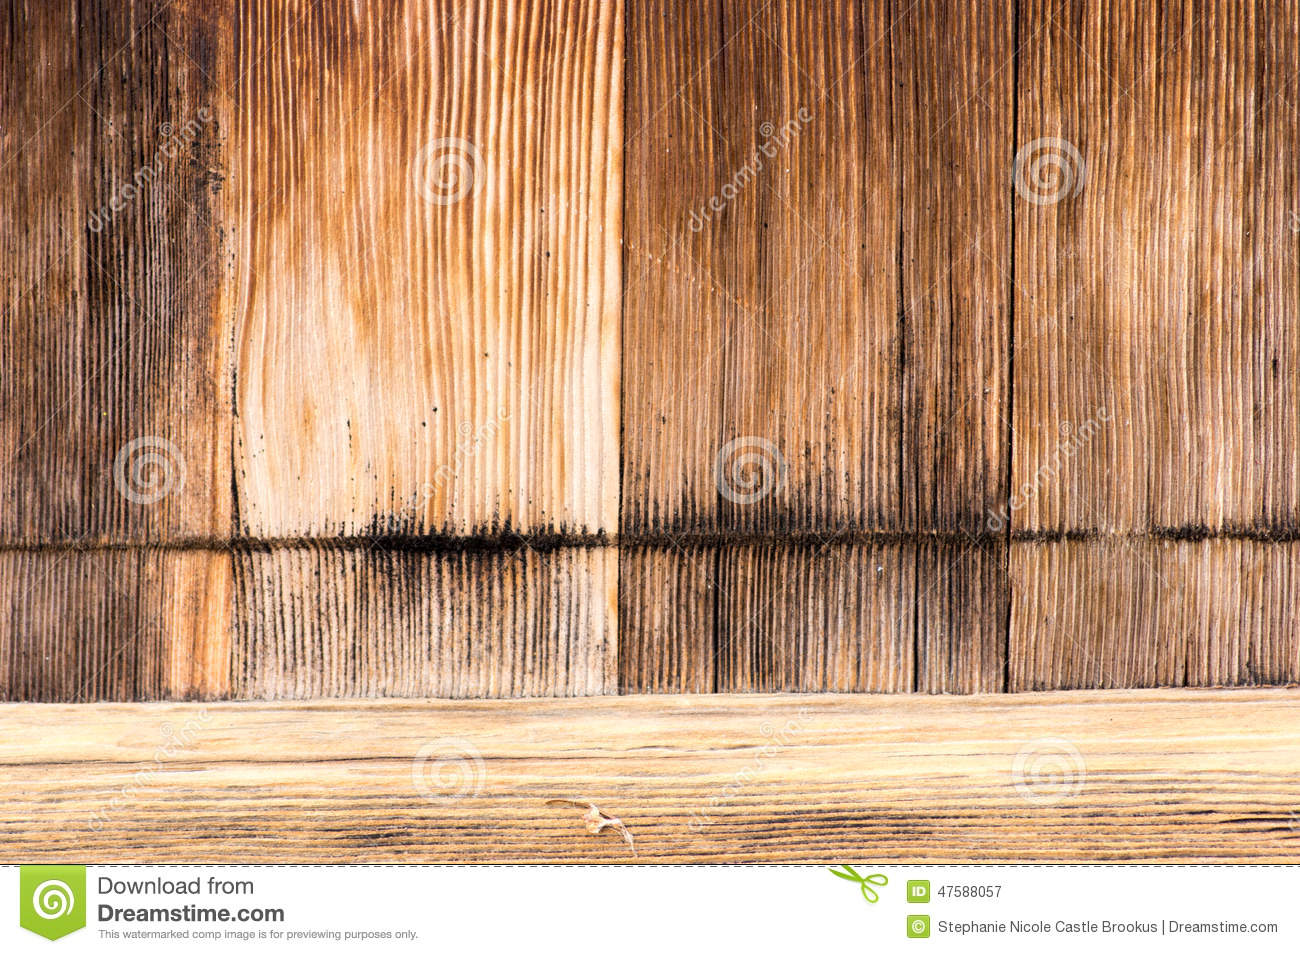 Wood grain door and threshold & Wood Grain Door And Threshold Stock Image - Image of mold decay ...